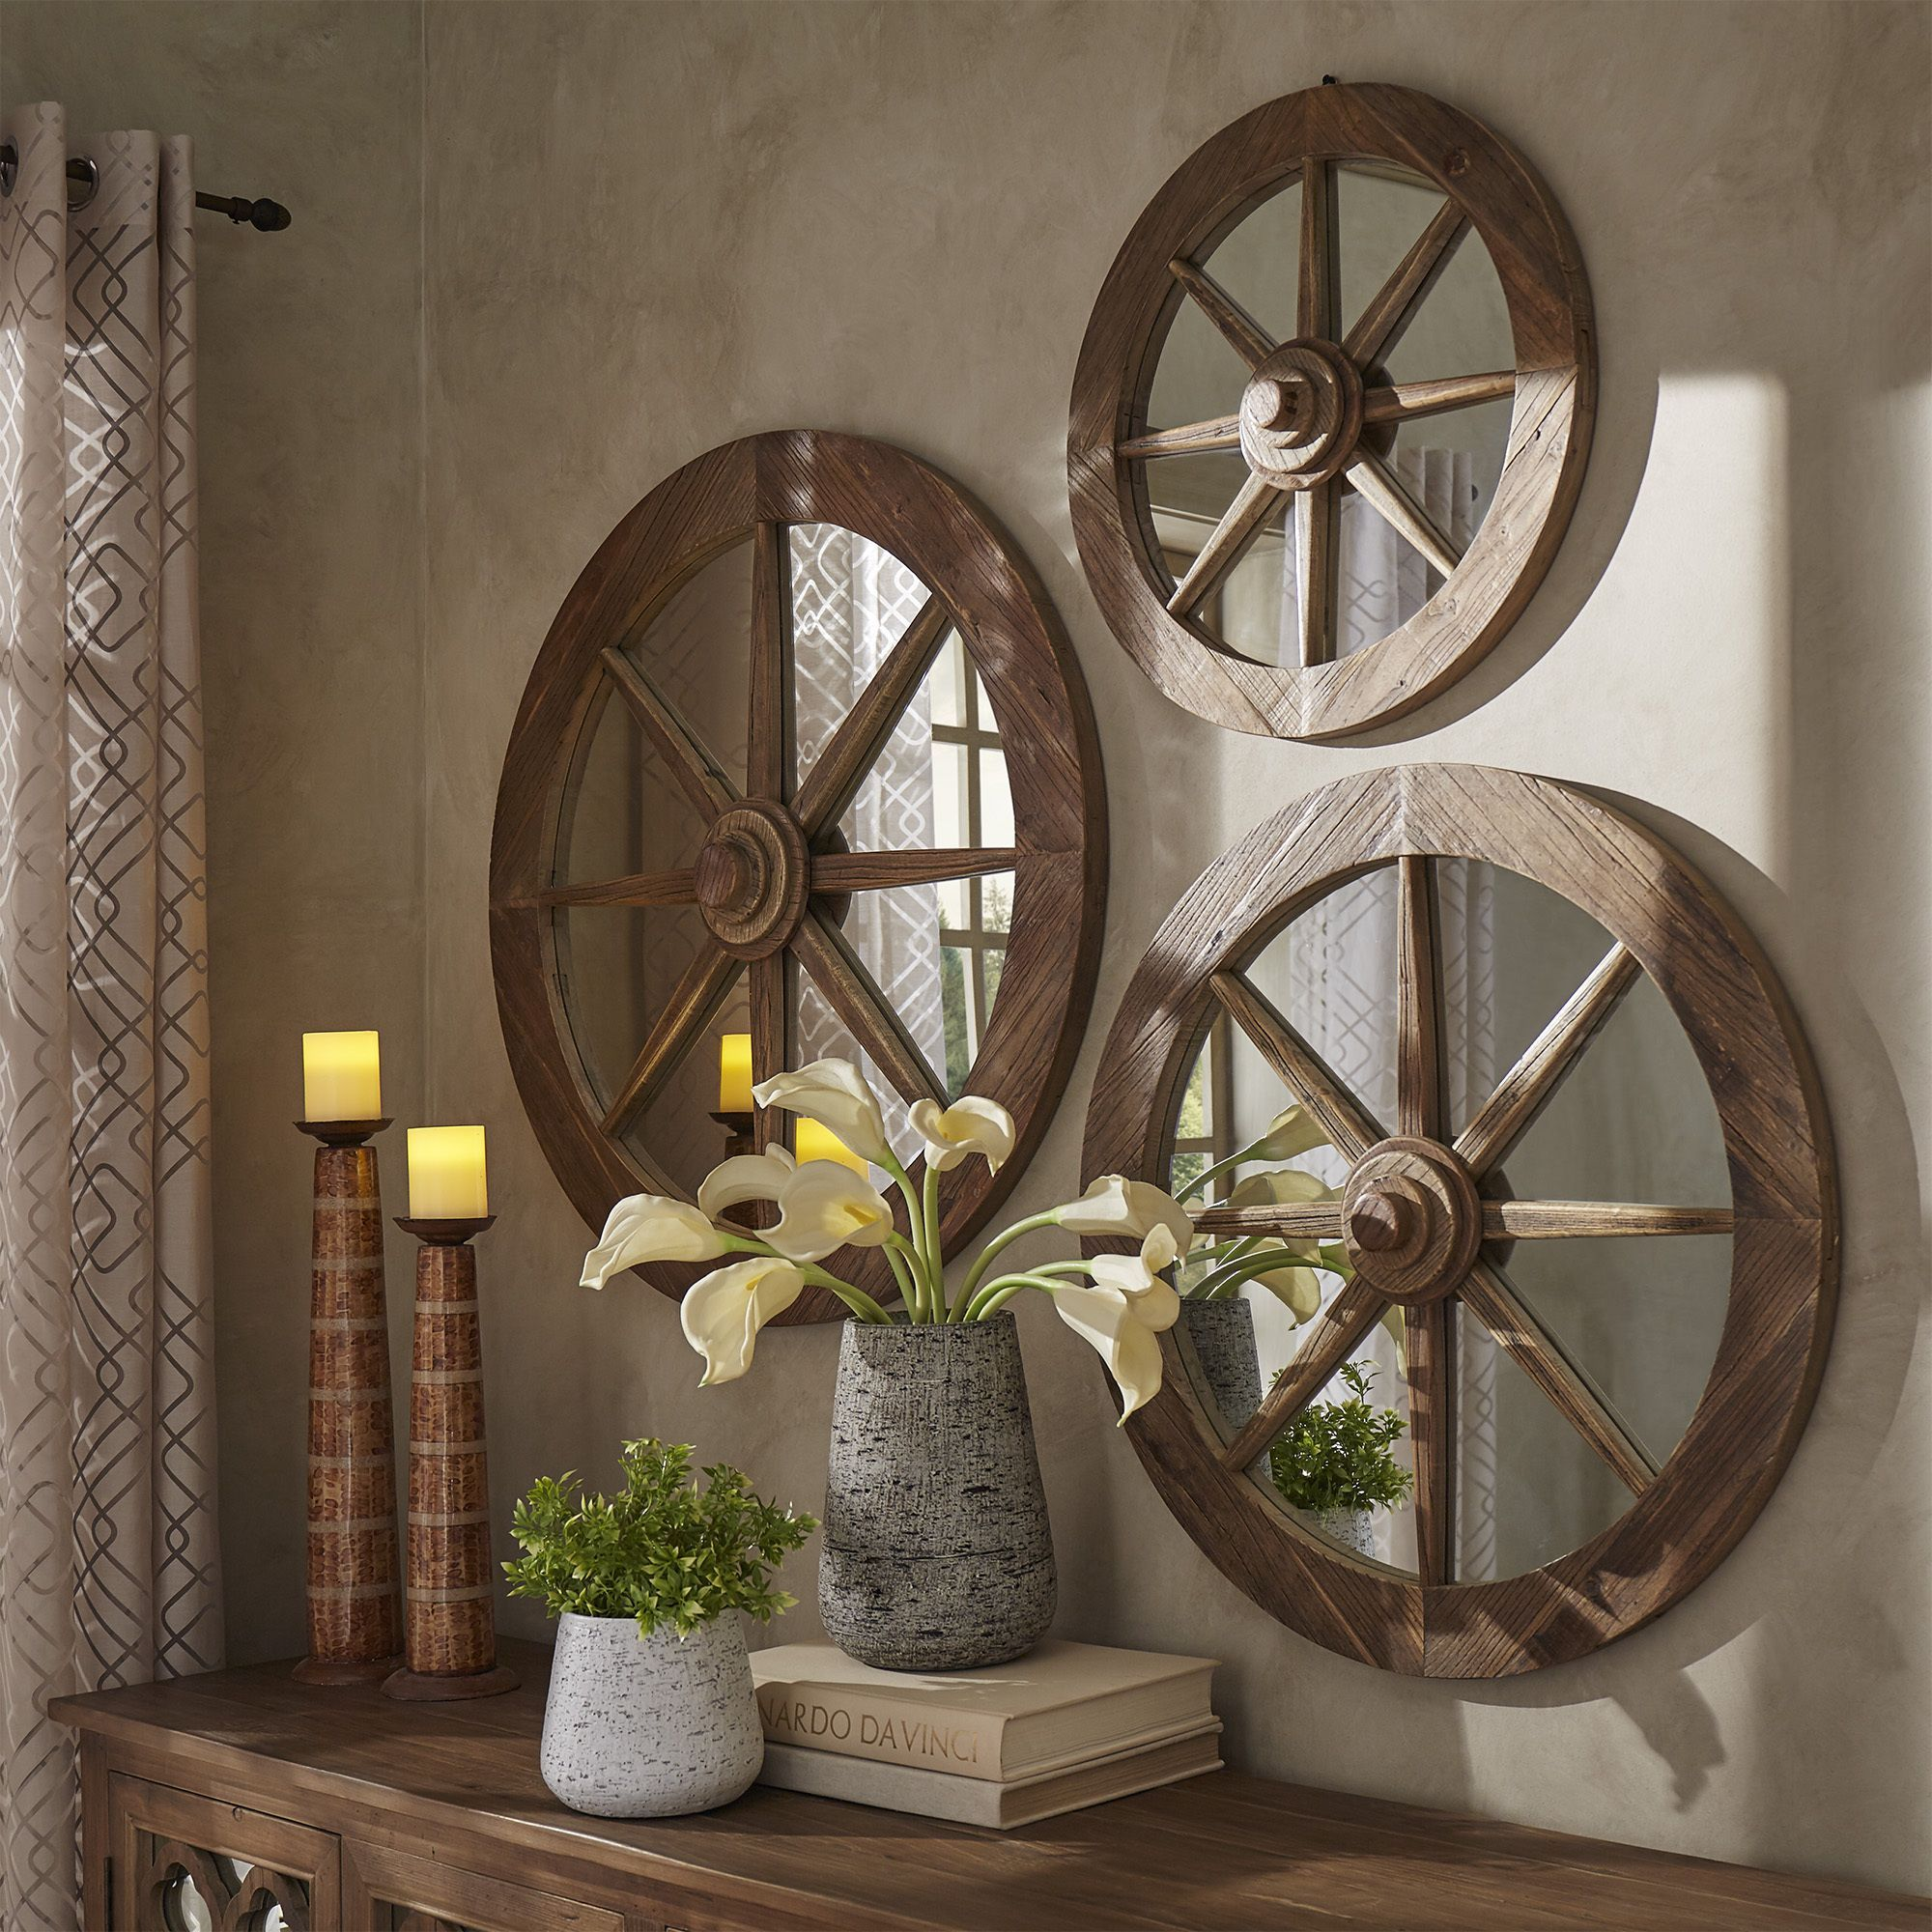 Mirrors add a few mirrors in your home to both add light and create moravia round reclaimed wood wagon wheel wall mirror by signal hills diameter brown arubaitofo Image collections